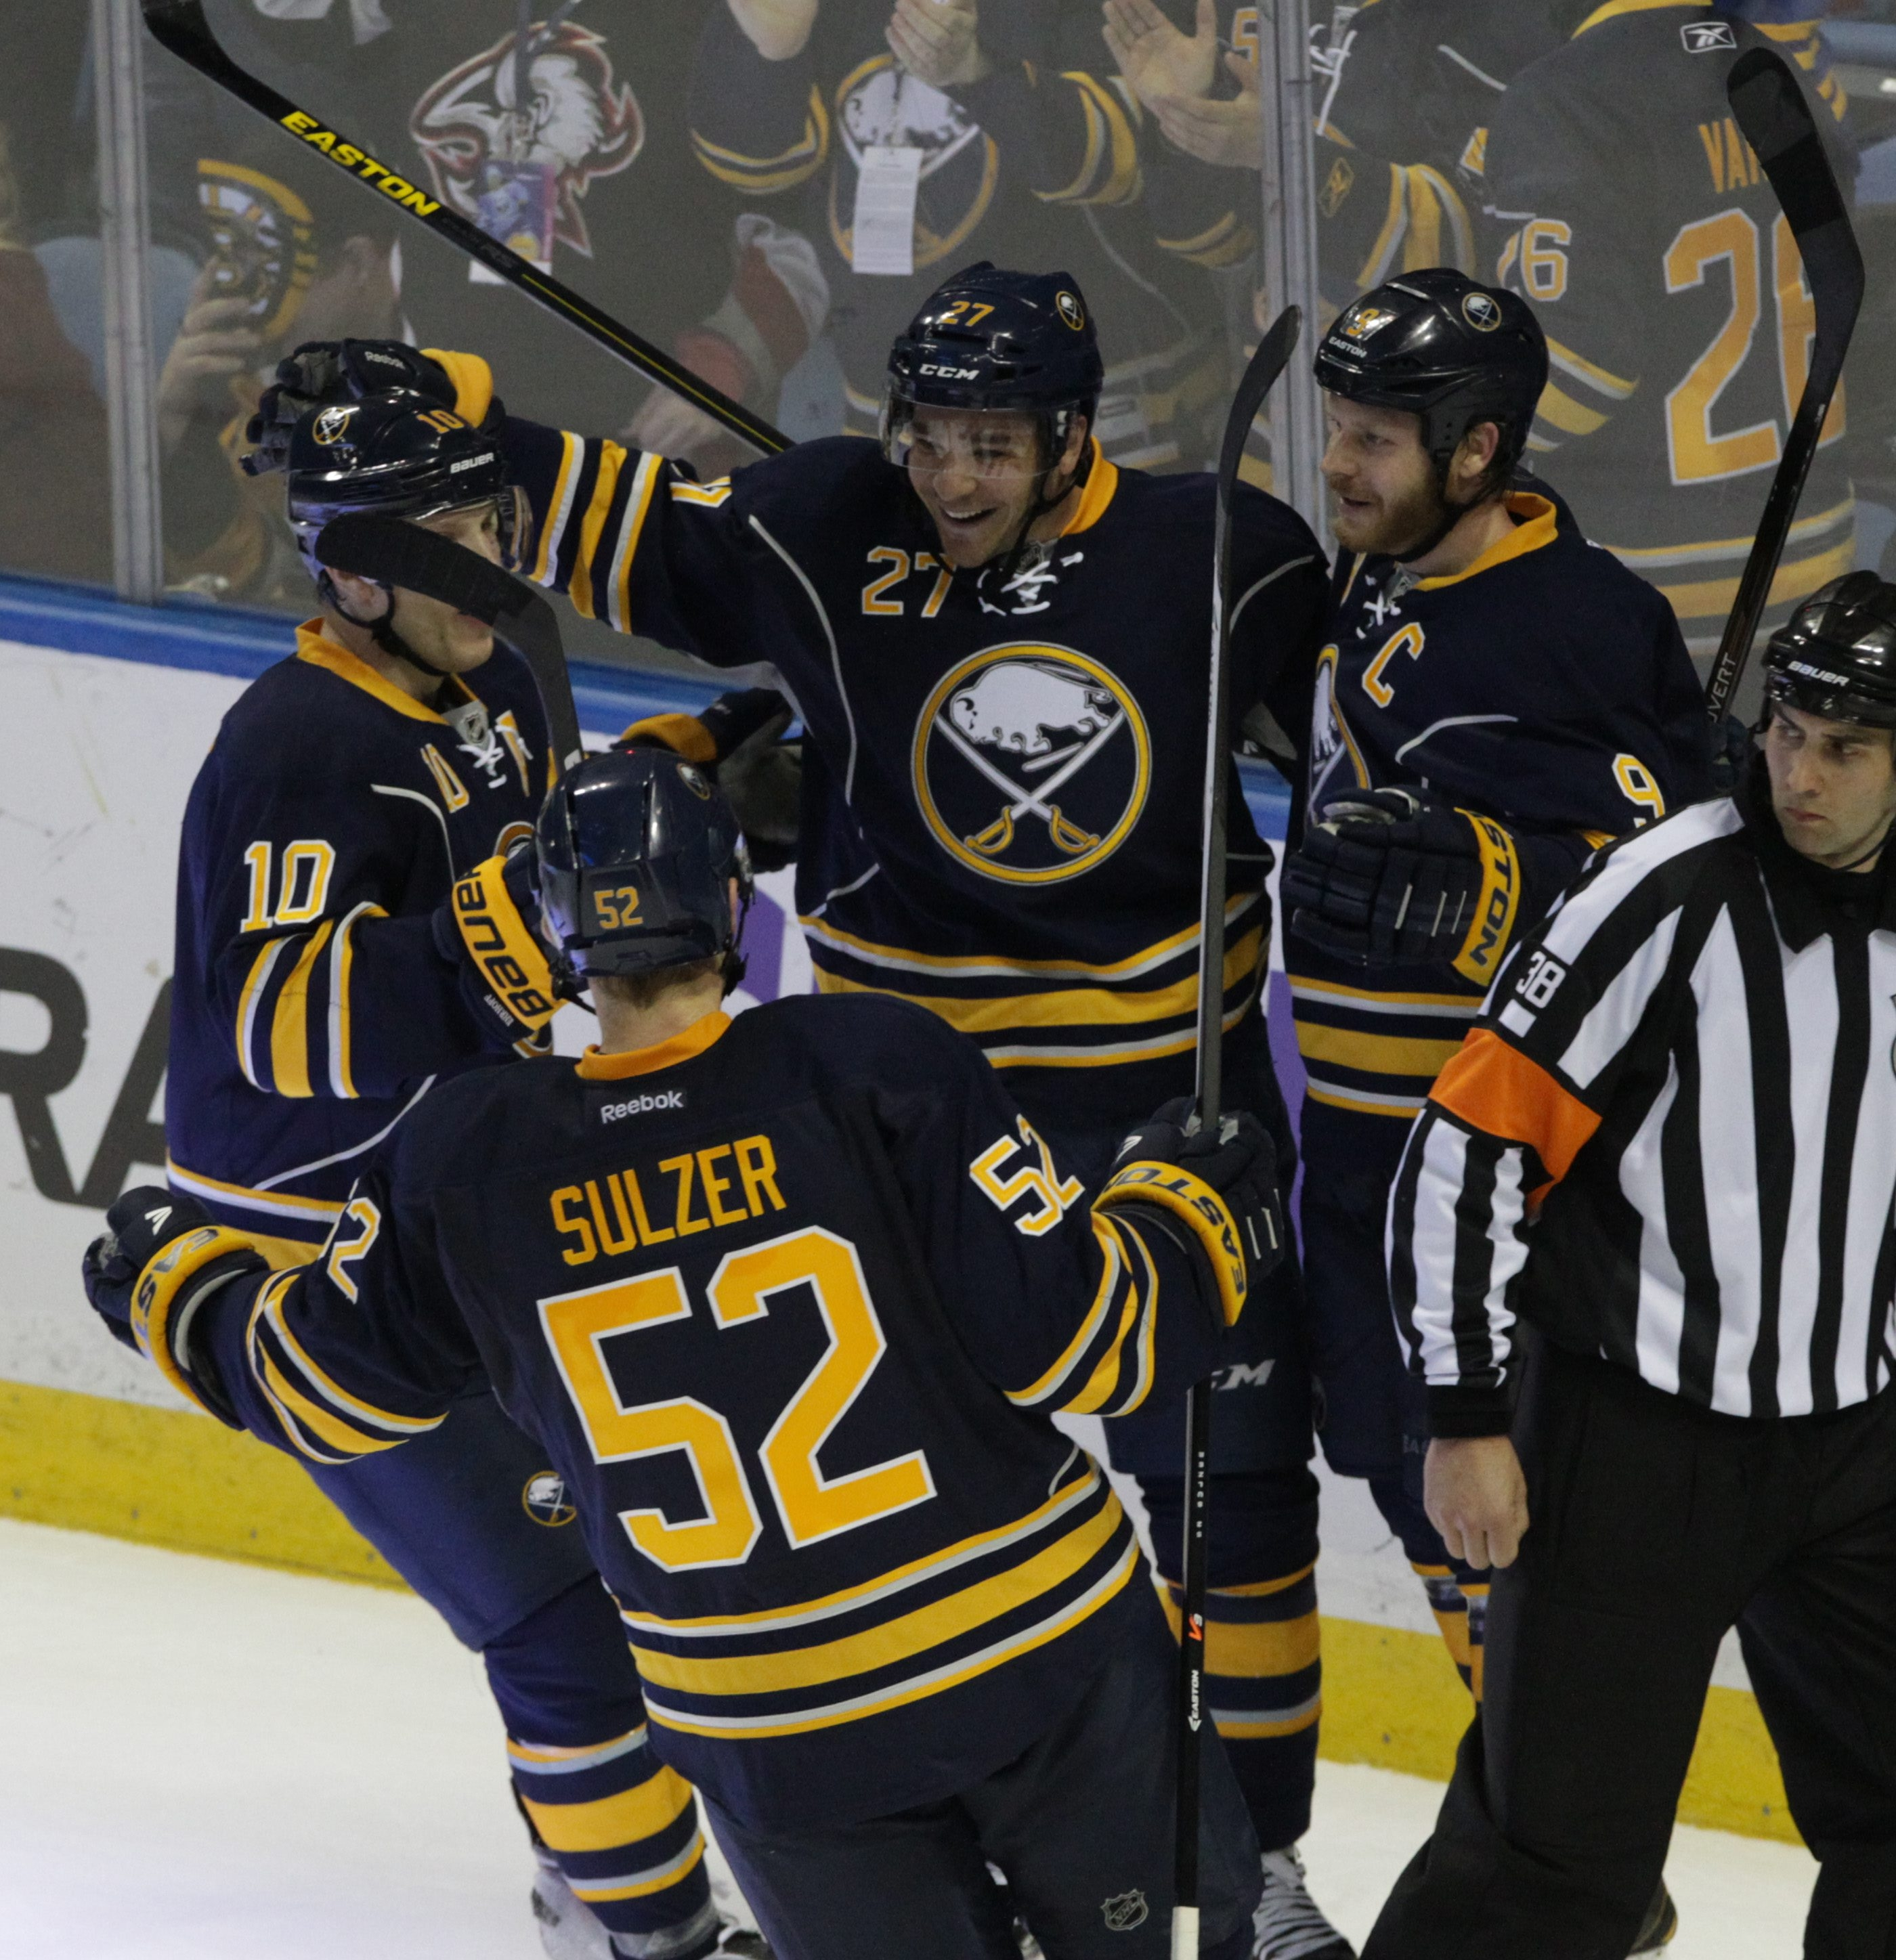 The Sabres' Matt D'Agostini (27) celebrates his game-winning goal in overtime after Matt Moulson tied it in regulation in Buffalo's 5-4 win. 5-4mwimn.